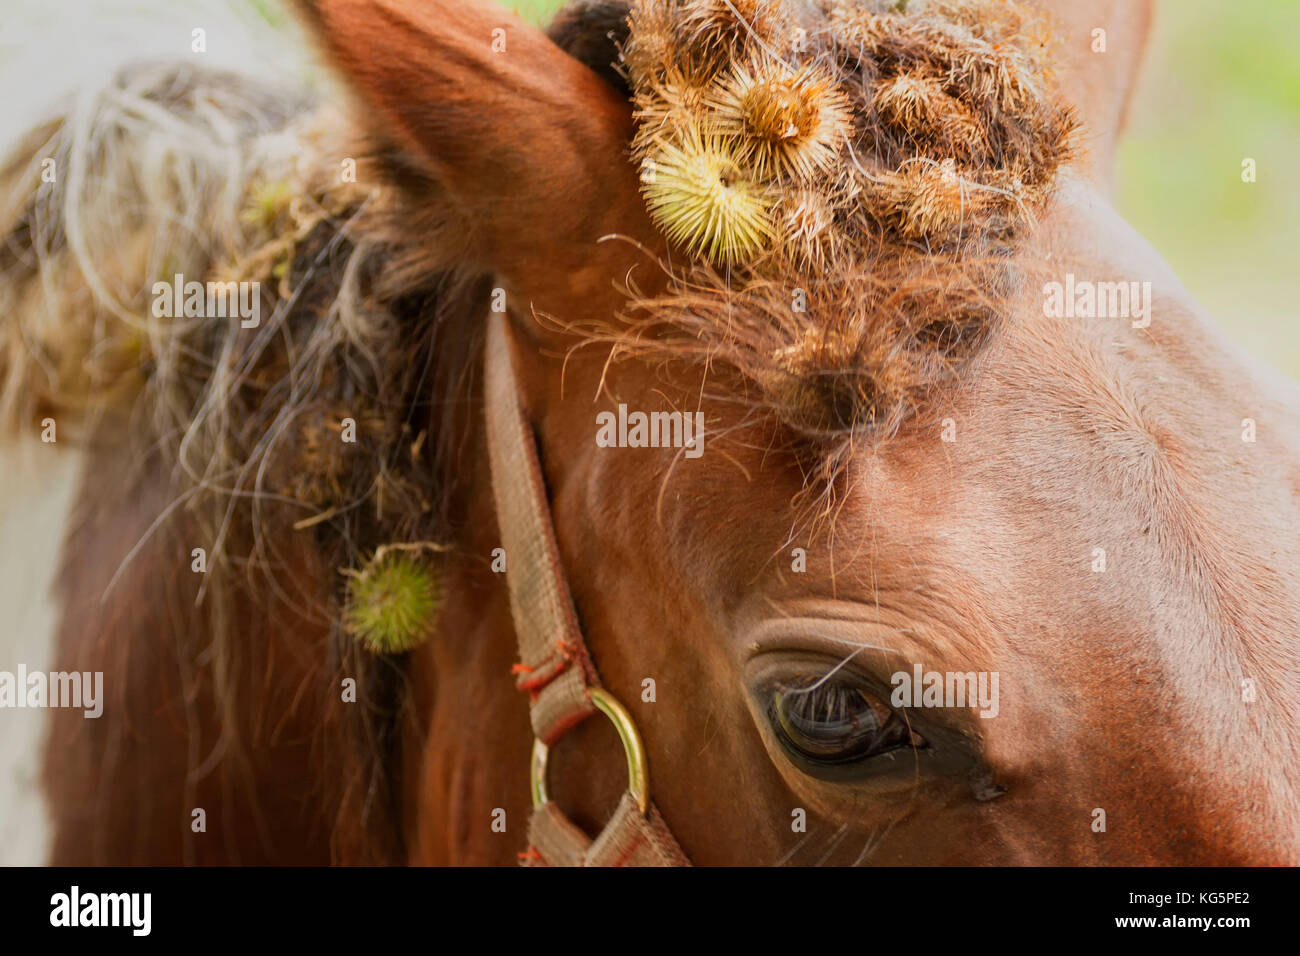 Brown horses eye and mane, Croydon, England, United Kingdom - Stock Image